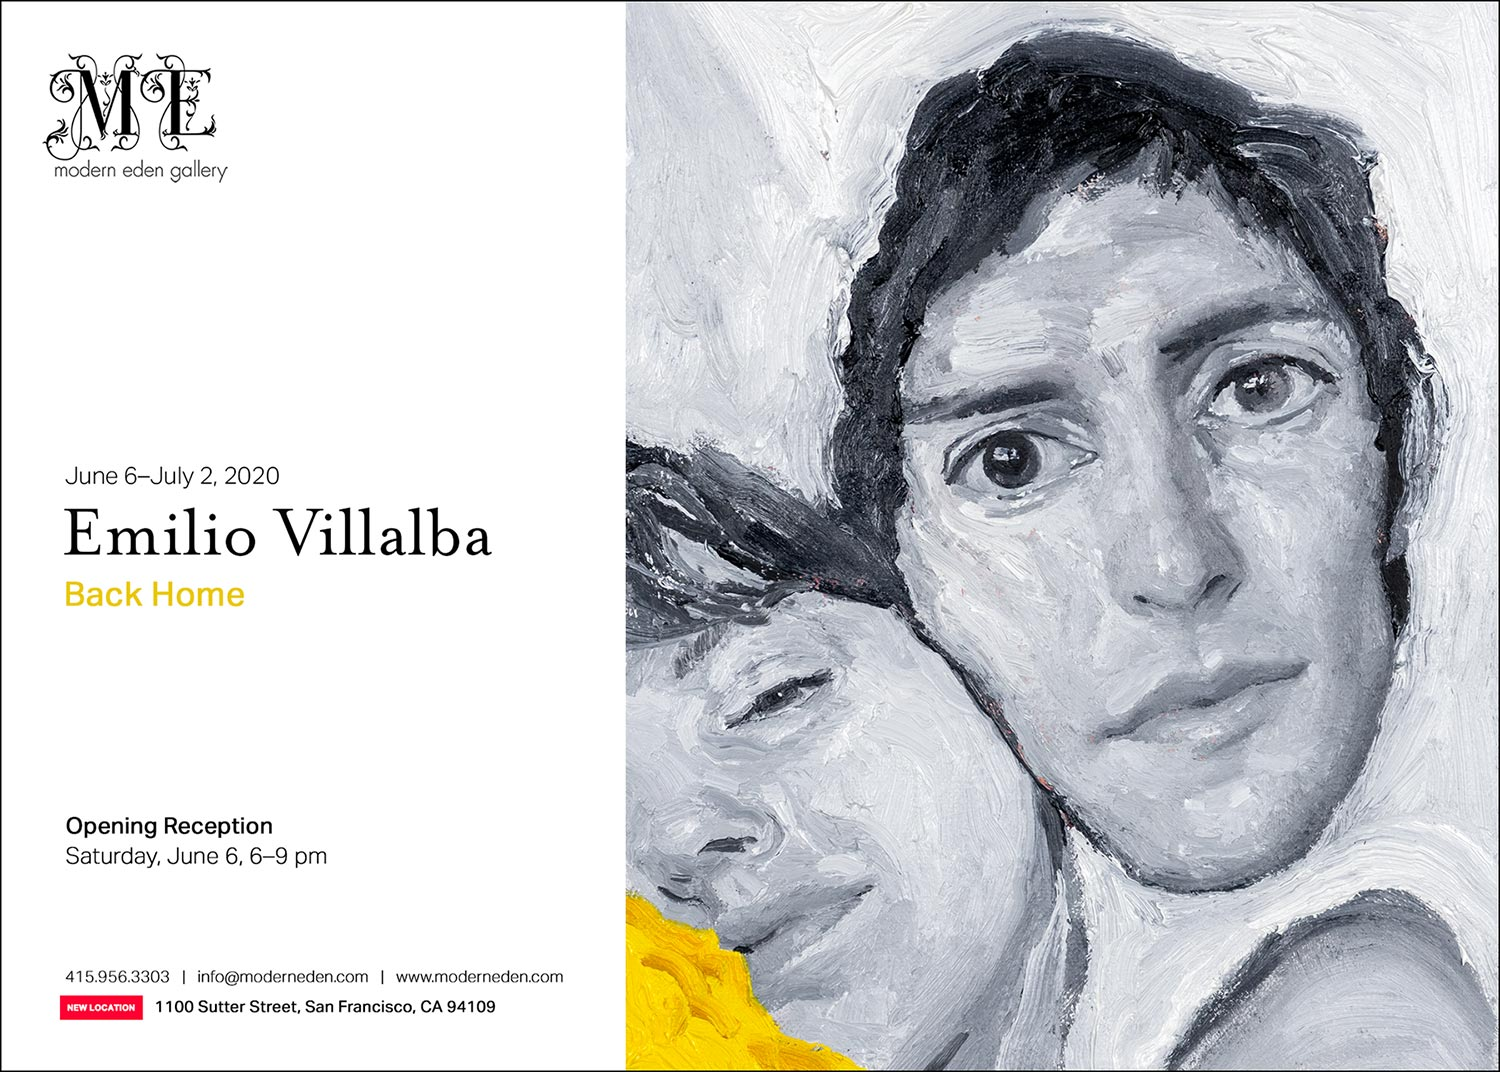 Emilio Villalba: Back Home